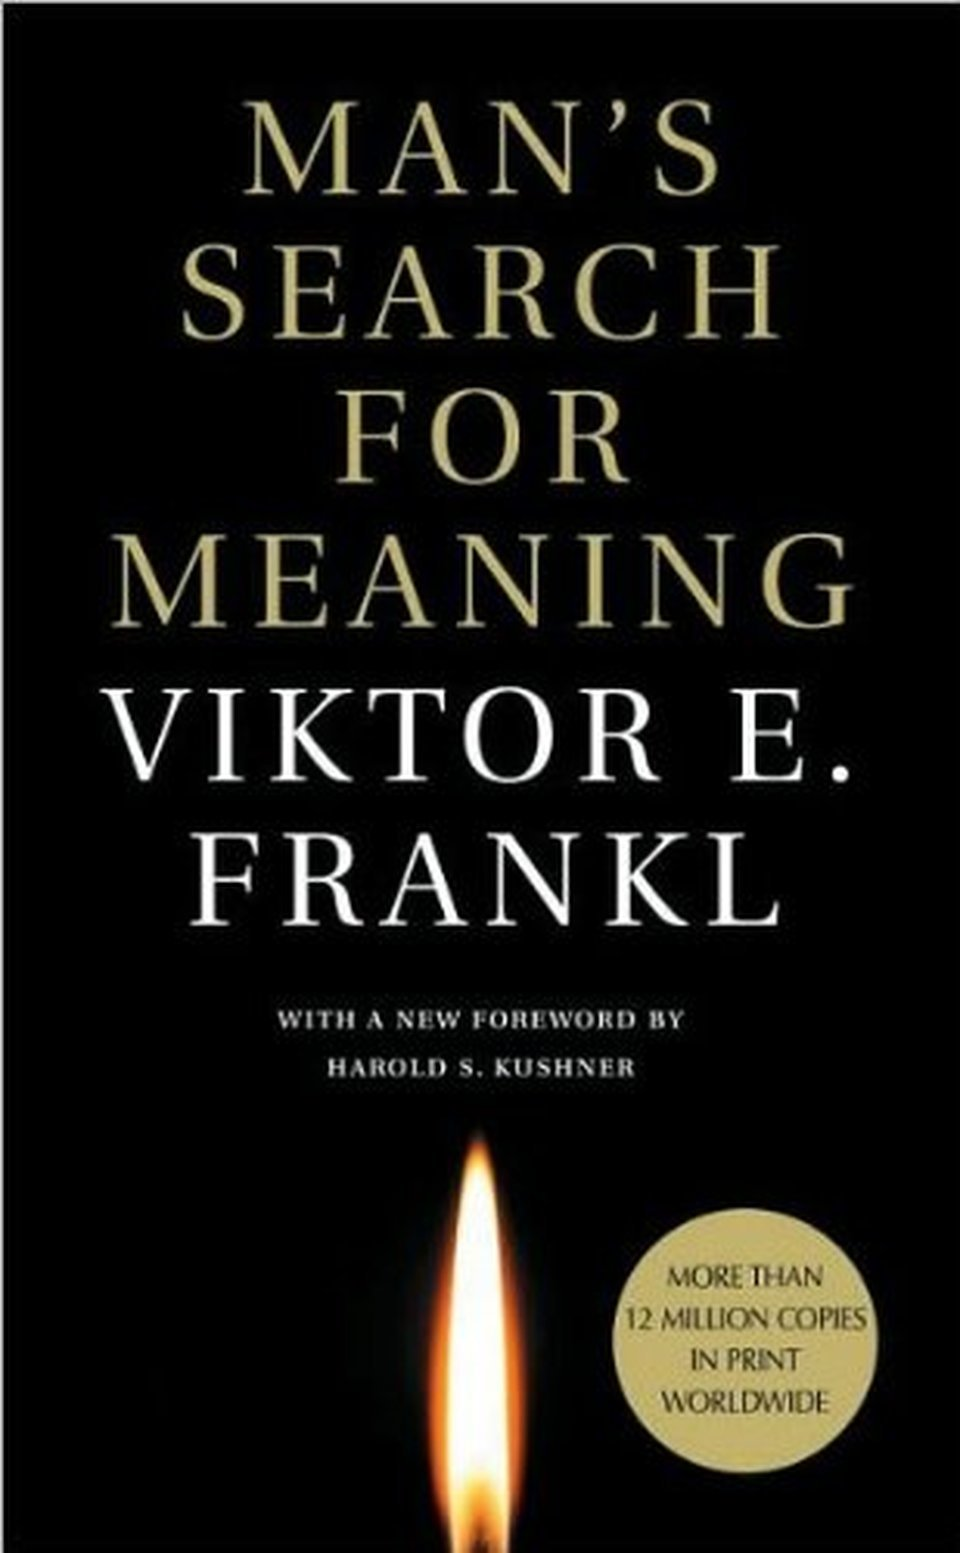 Book cover of Man's Search for Meaning